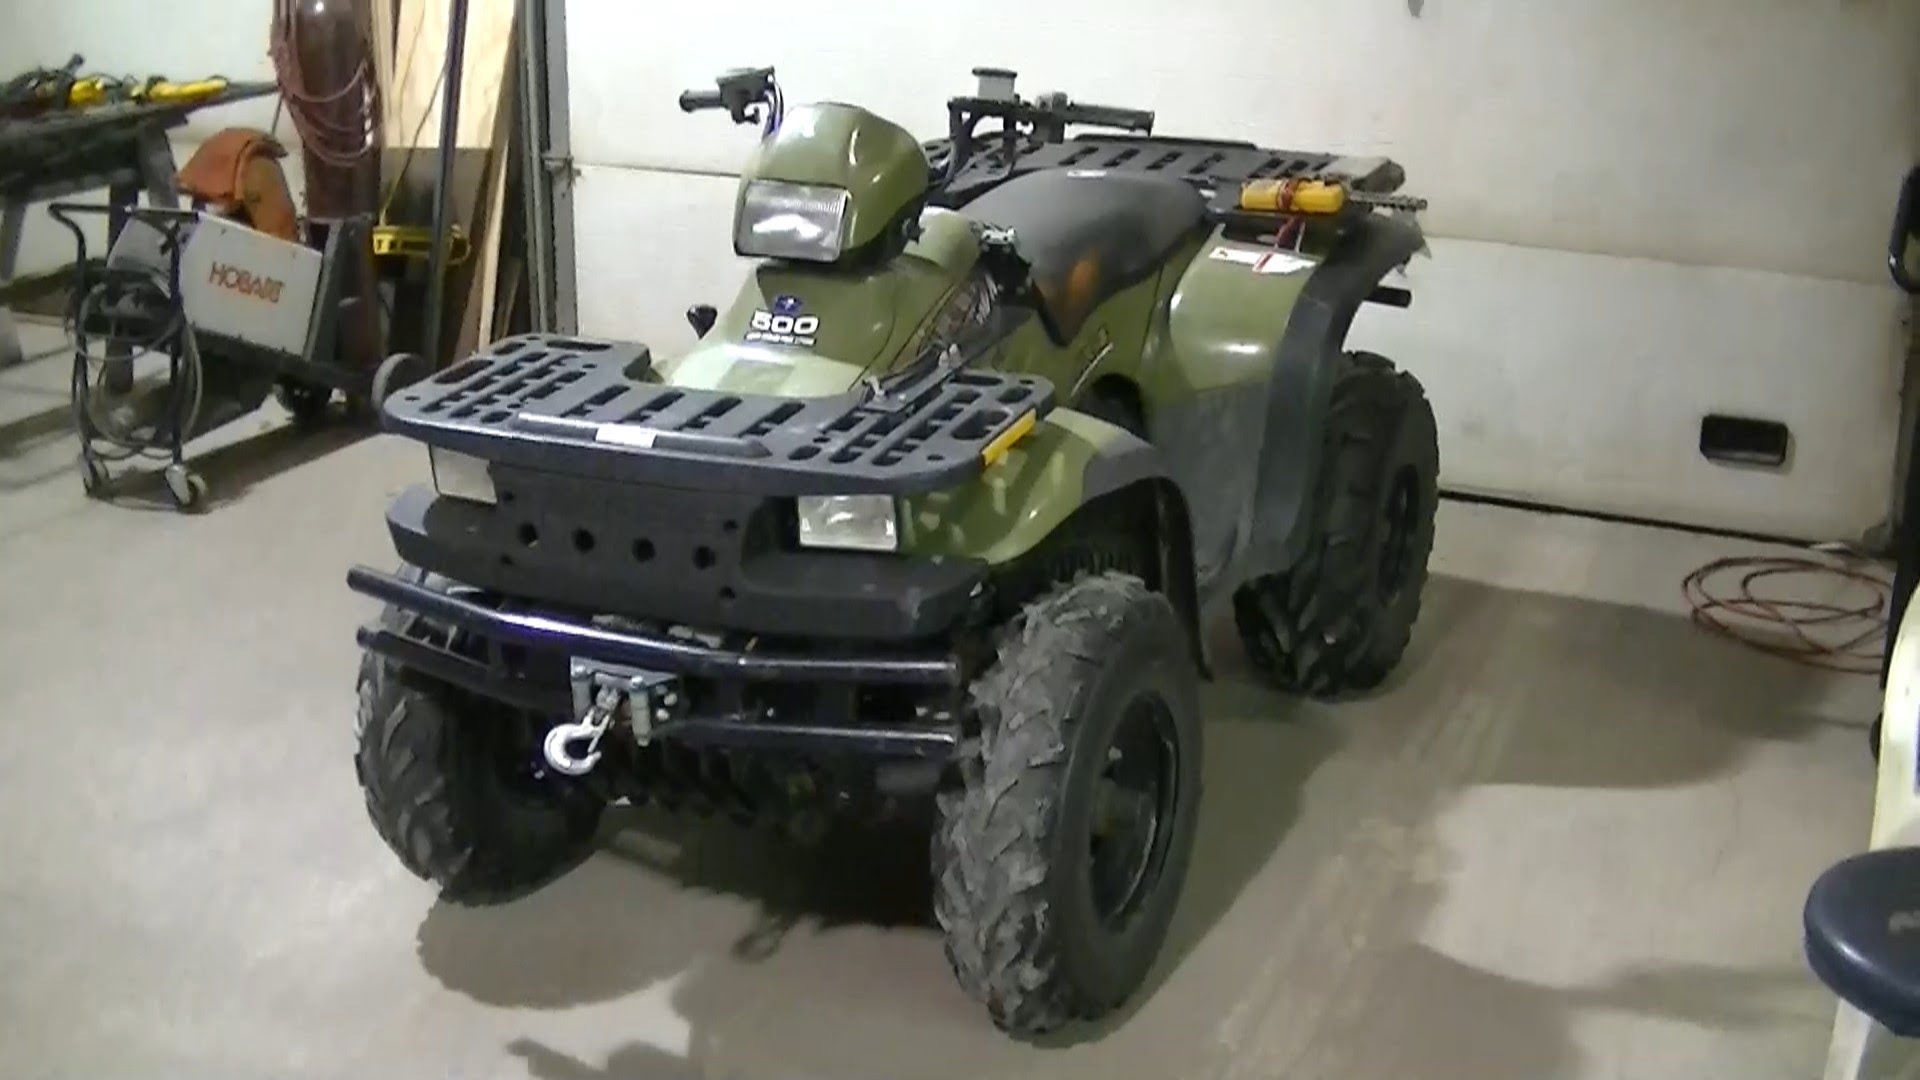 Polaris Sportsman 600 2005 images #121125